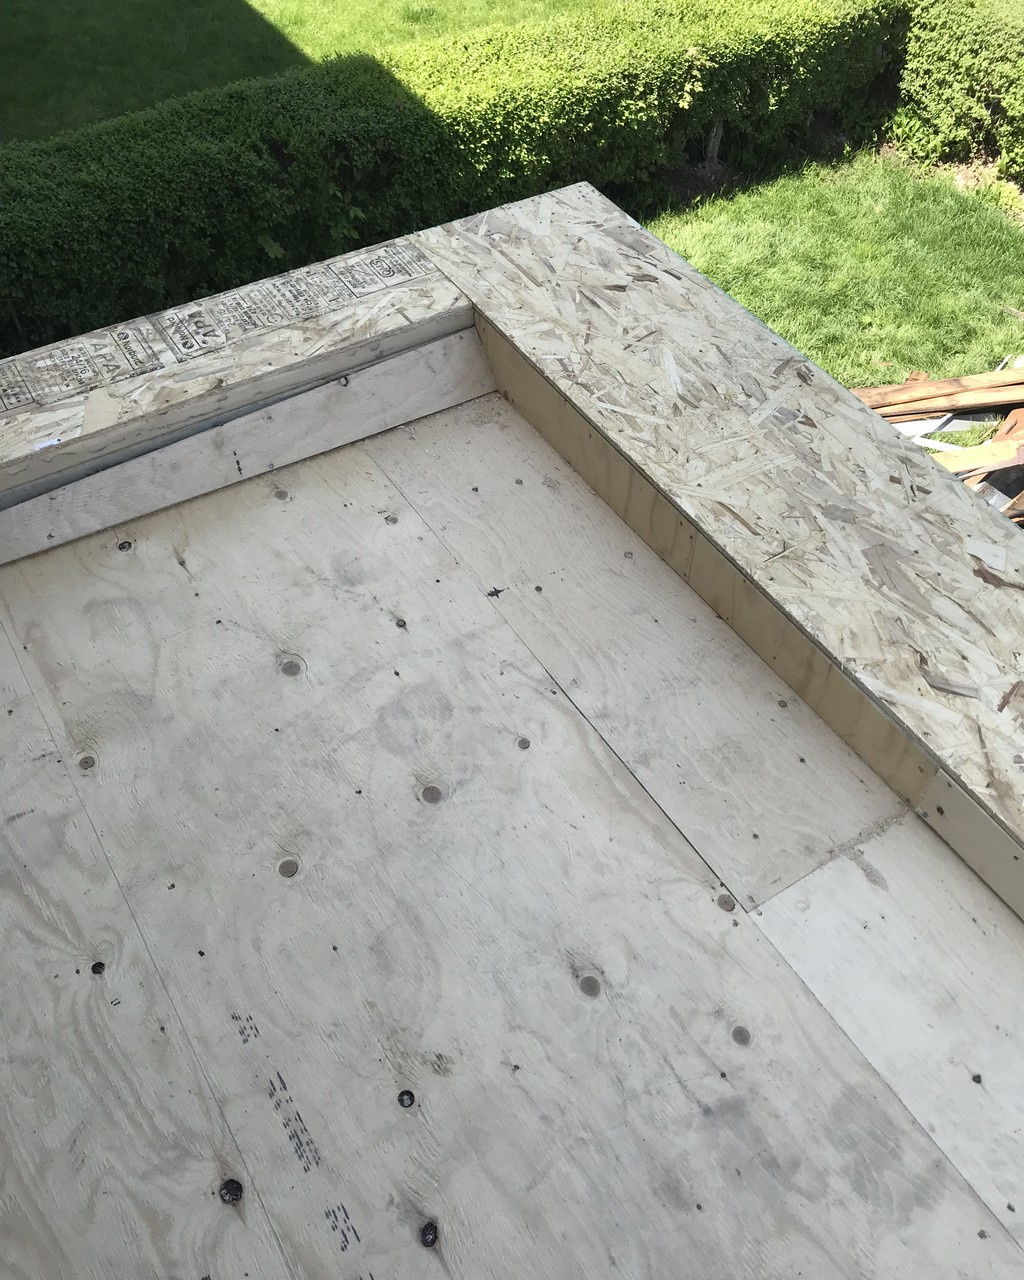 Carpentry alterations to canopy on home in Toronto